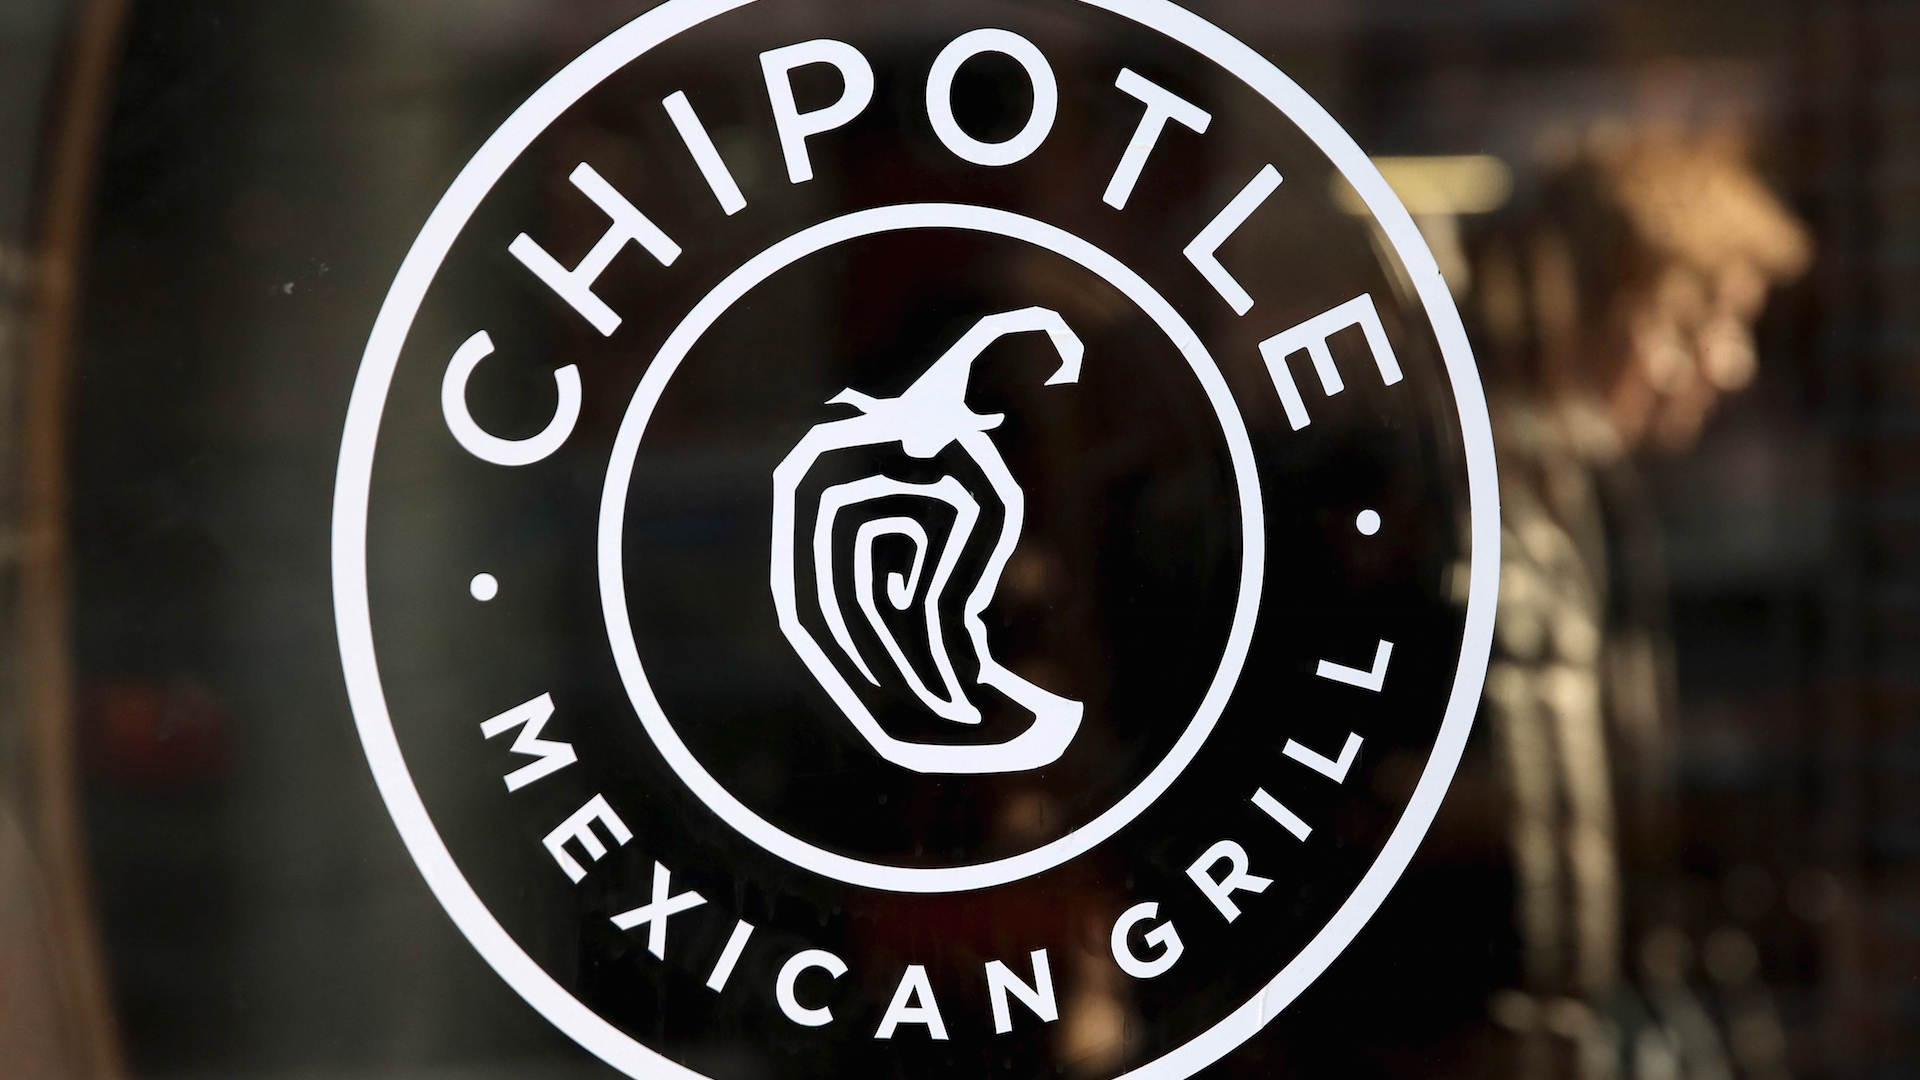 Chipotle closes store after workers fall sick   The Washington Post 1920x1080